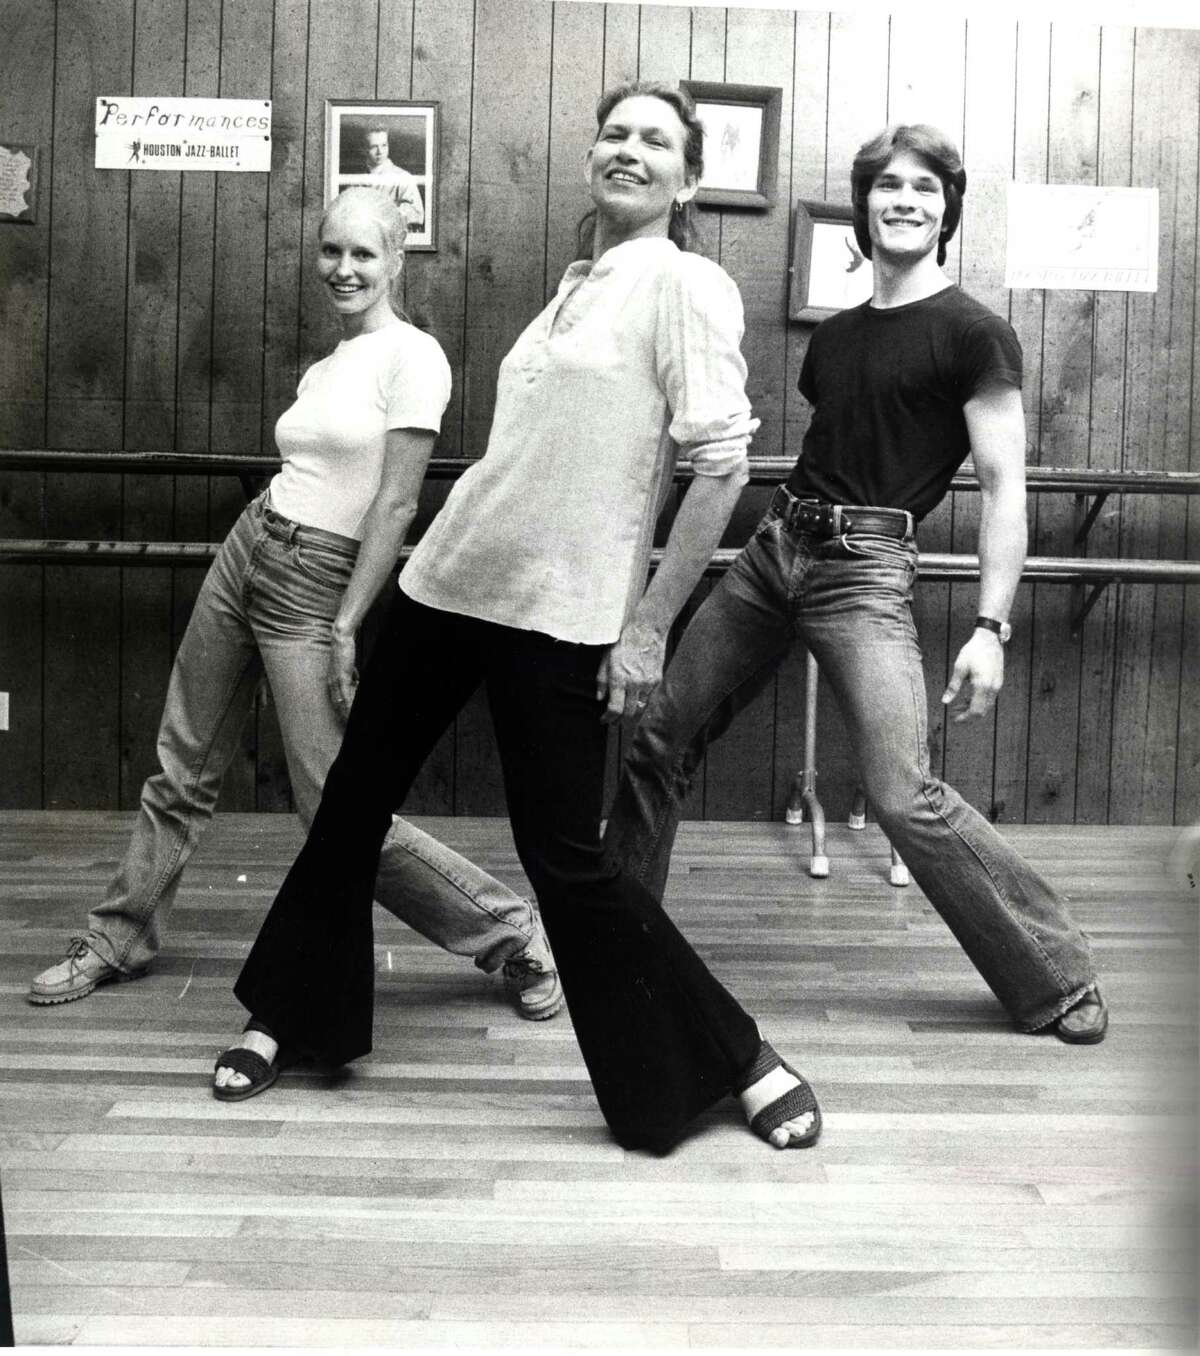 Patsy Swayze, center, taught her son Patrick Swayze and his wife Lisa Haapaniemi (aka Niemi) to dance at her studio in Houston. The three are shown in a 1978 photo.